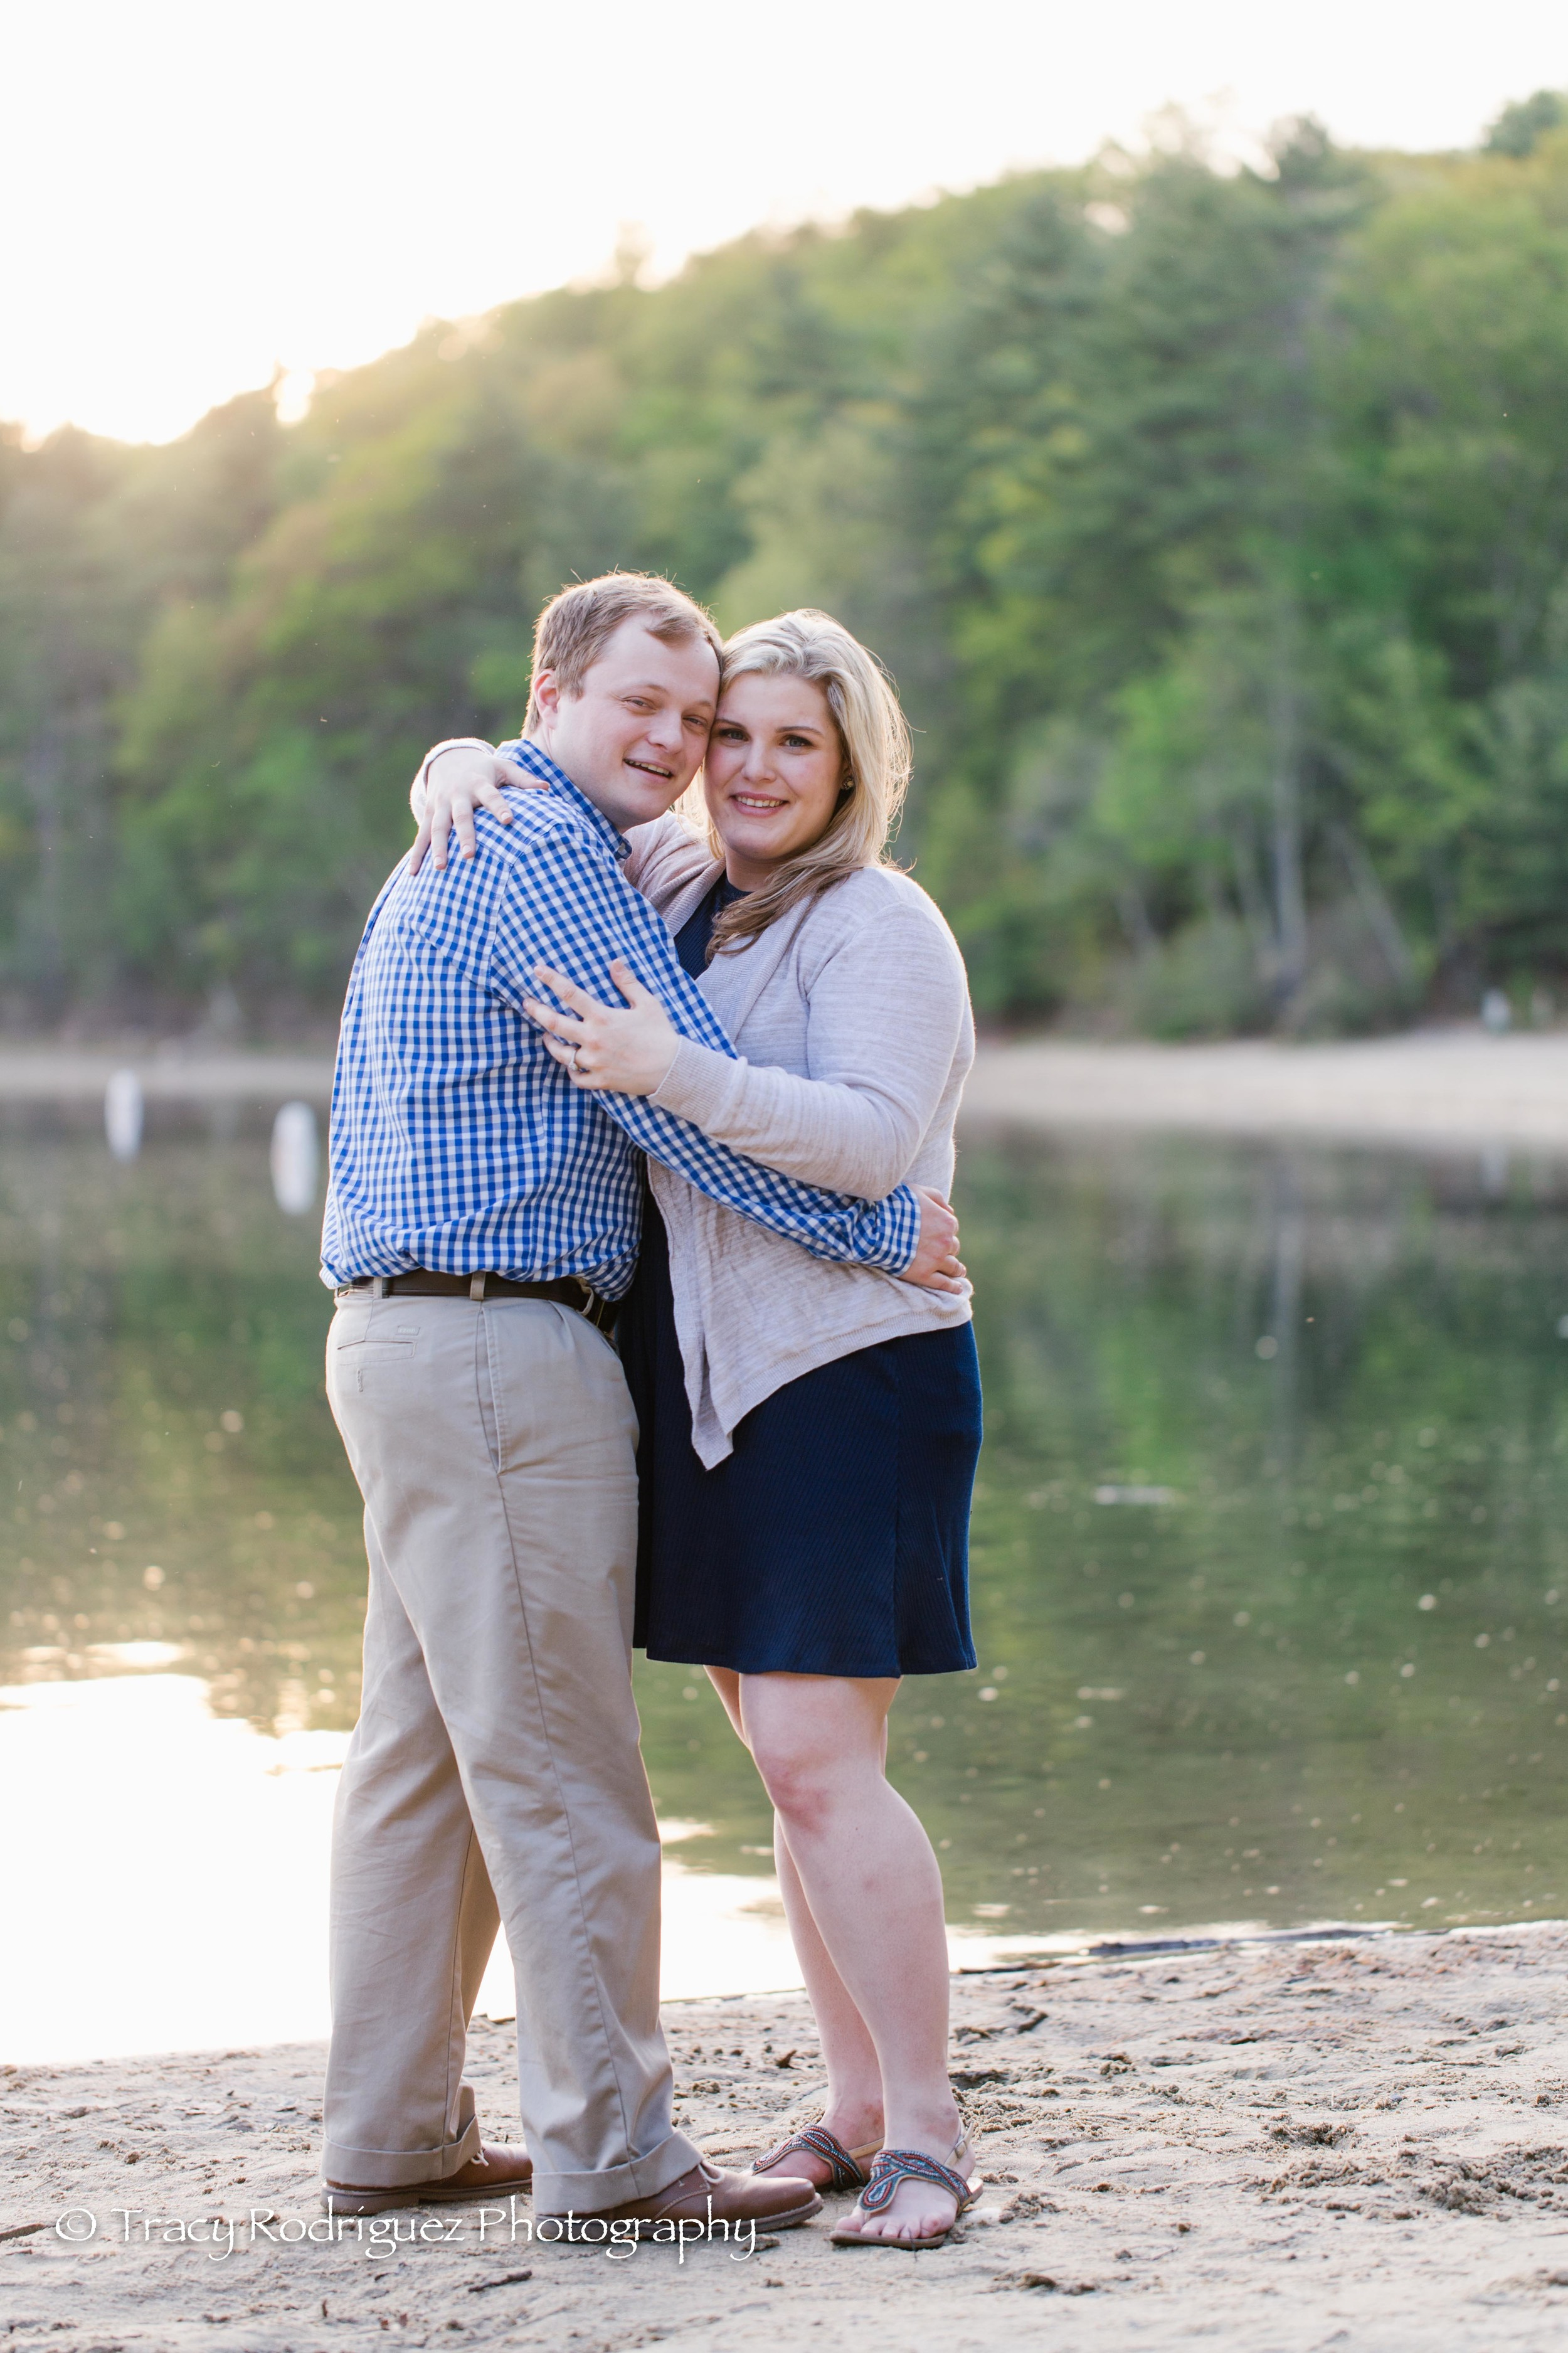 TracyRodriguezPhotography-Engagement-LowRes-84.jpg